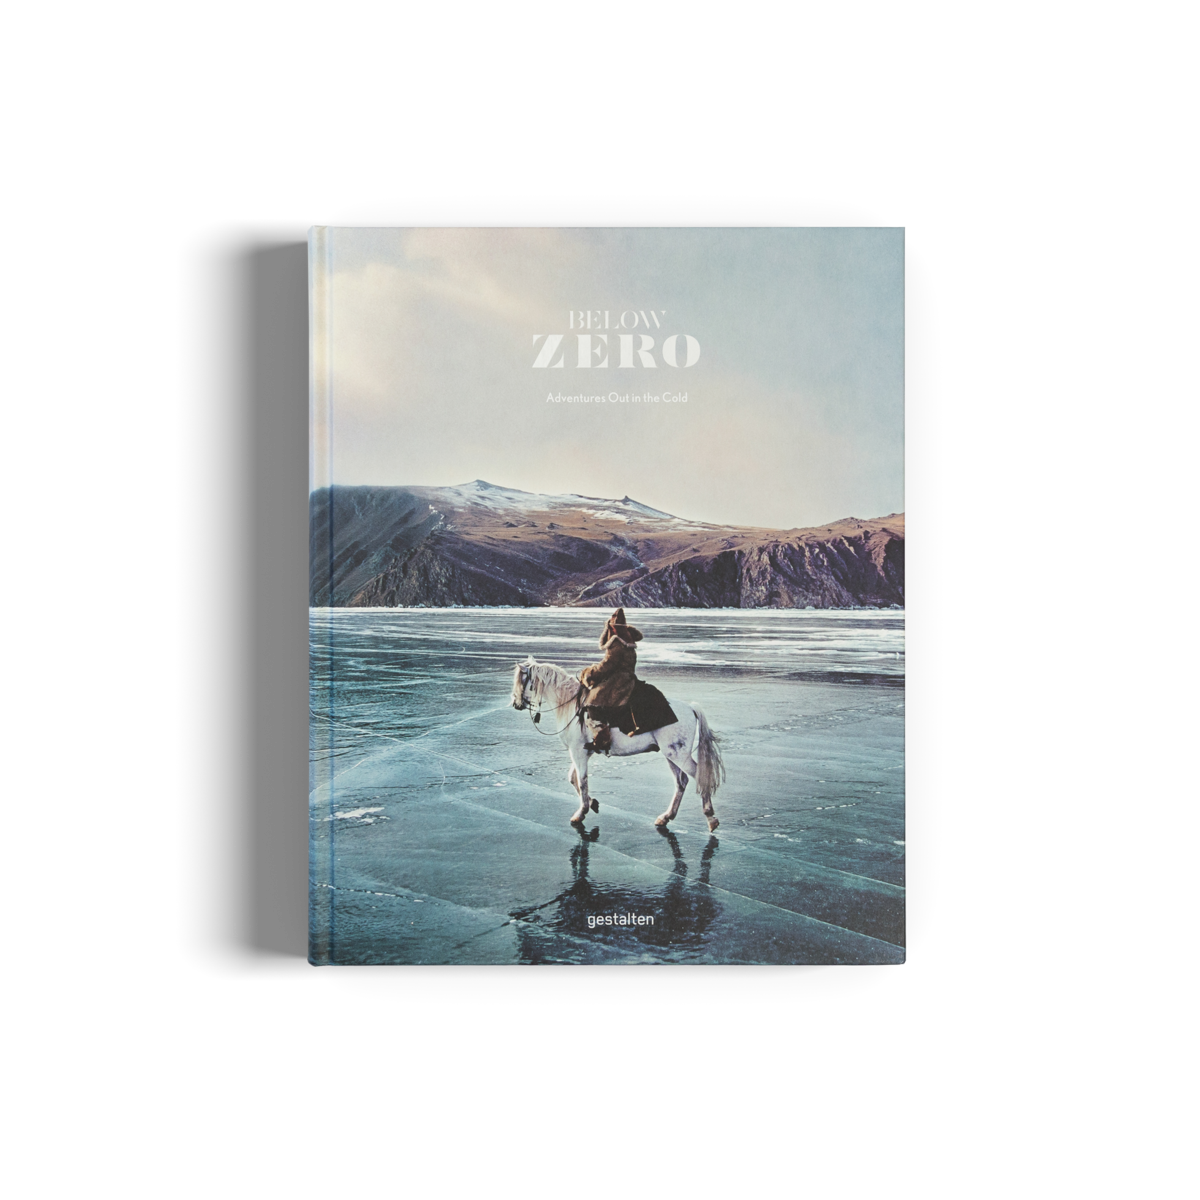 BELOW ZERO: ADVENTURES OUT IN THE COLD - The Lake and Company